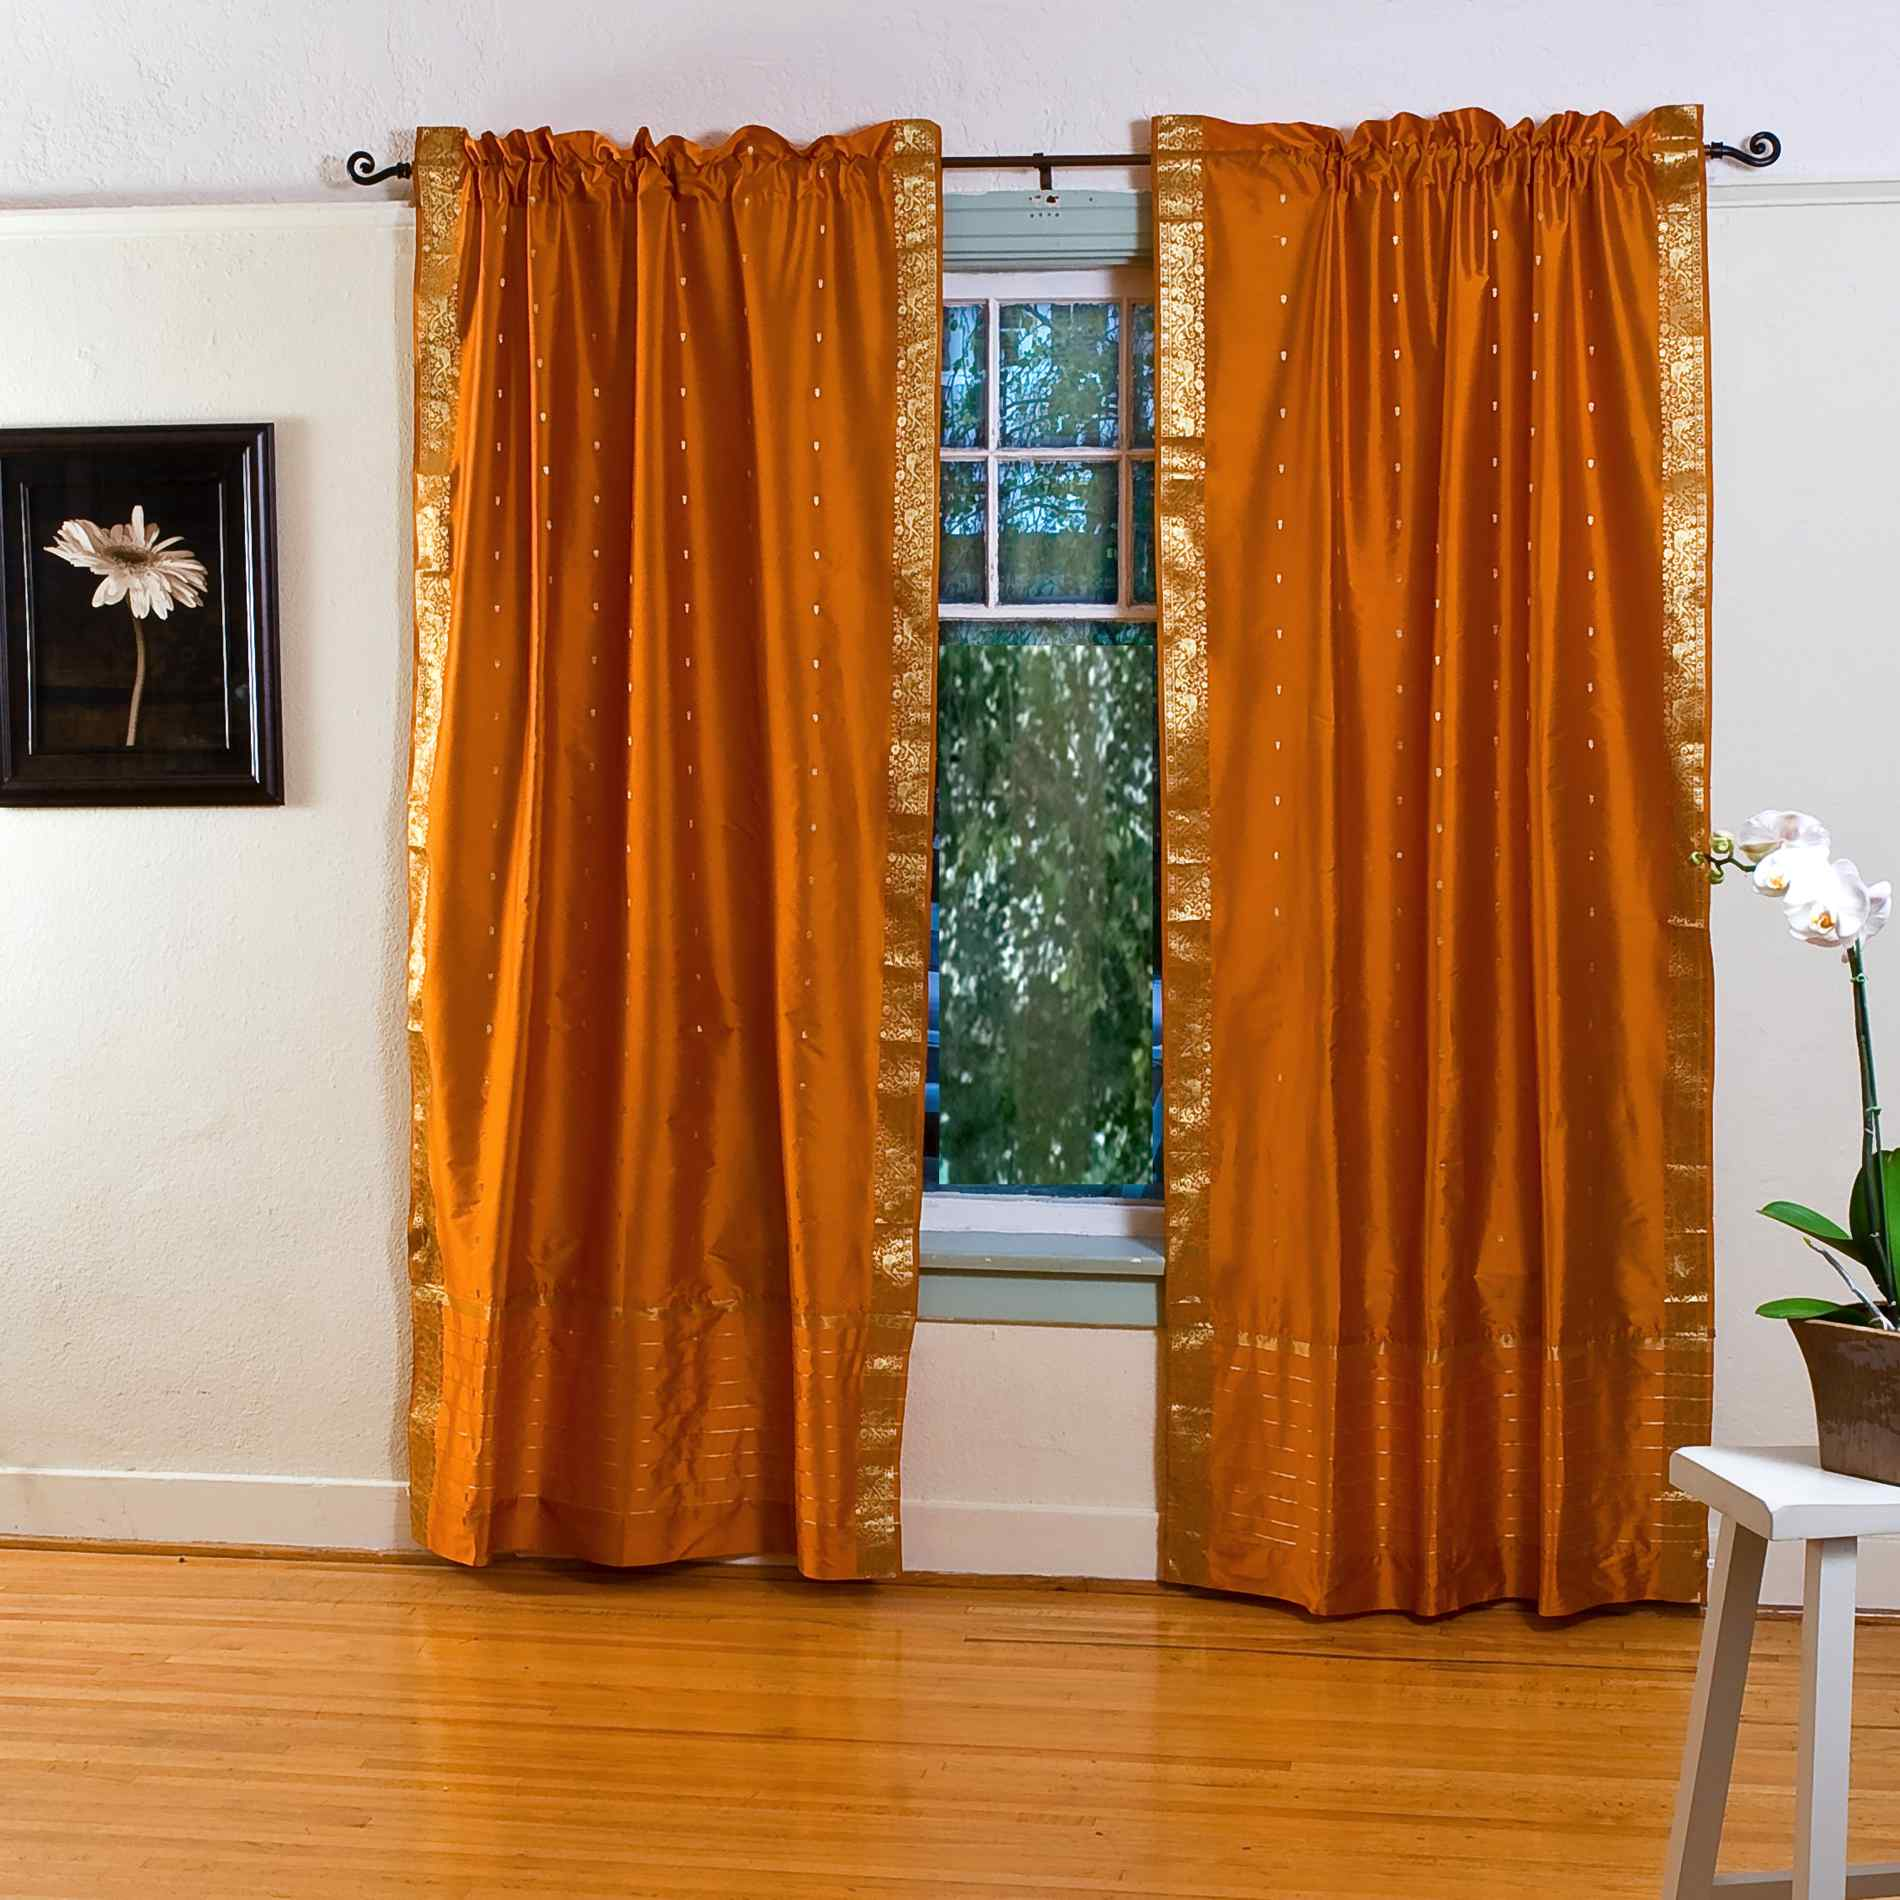 Mustard yellow curtains